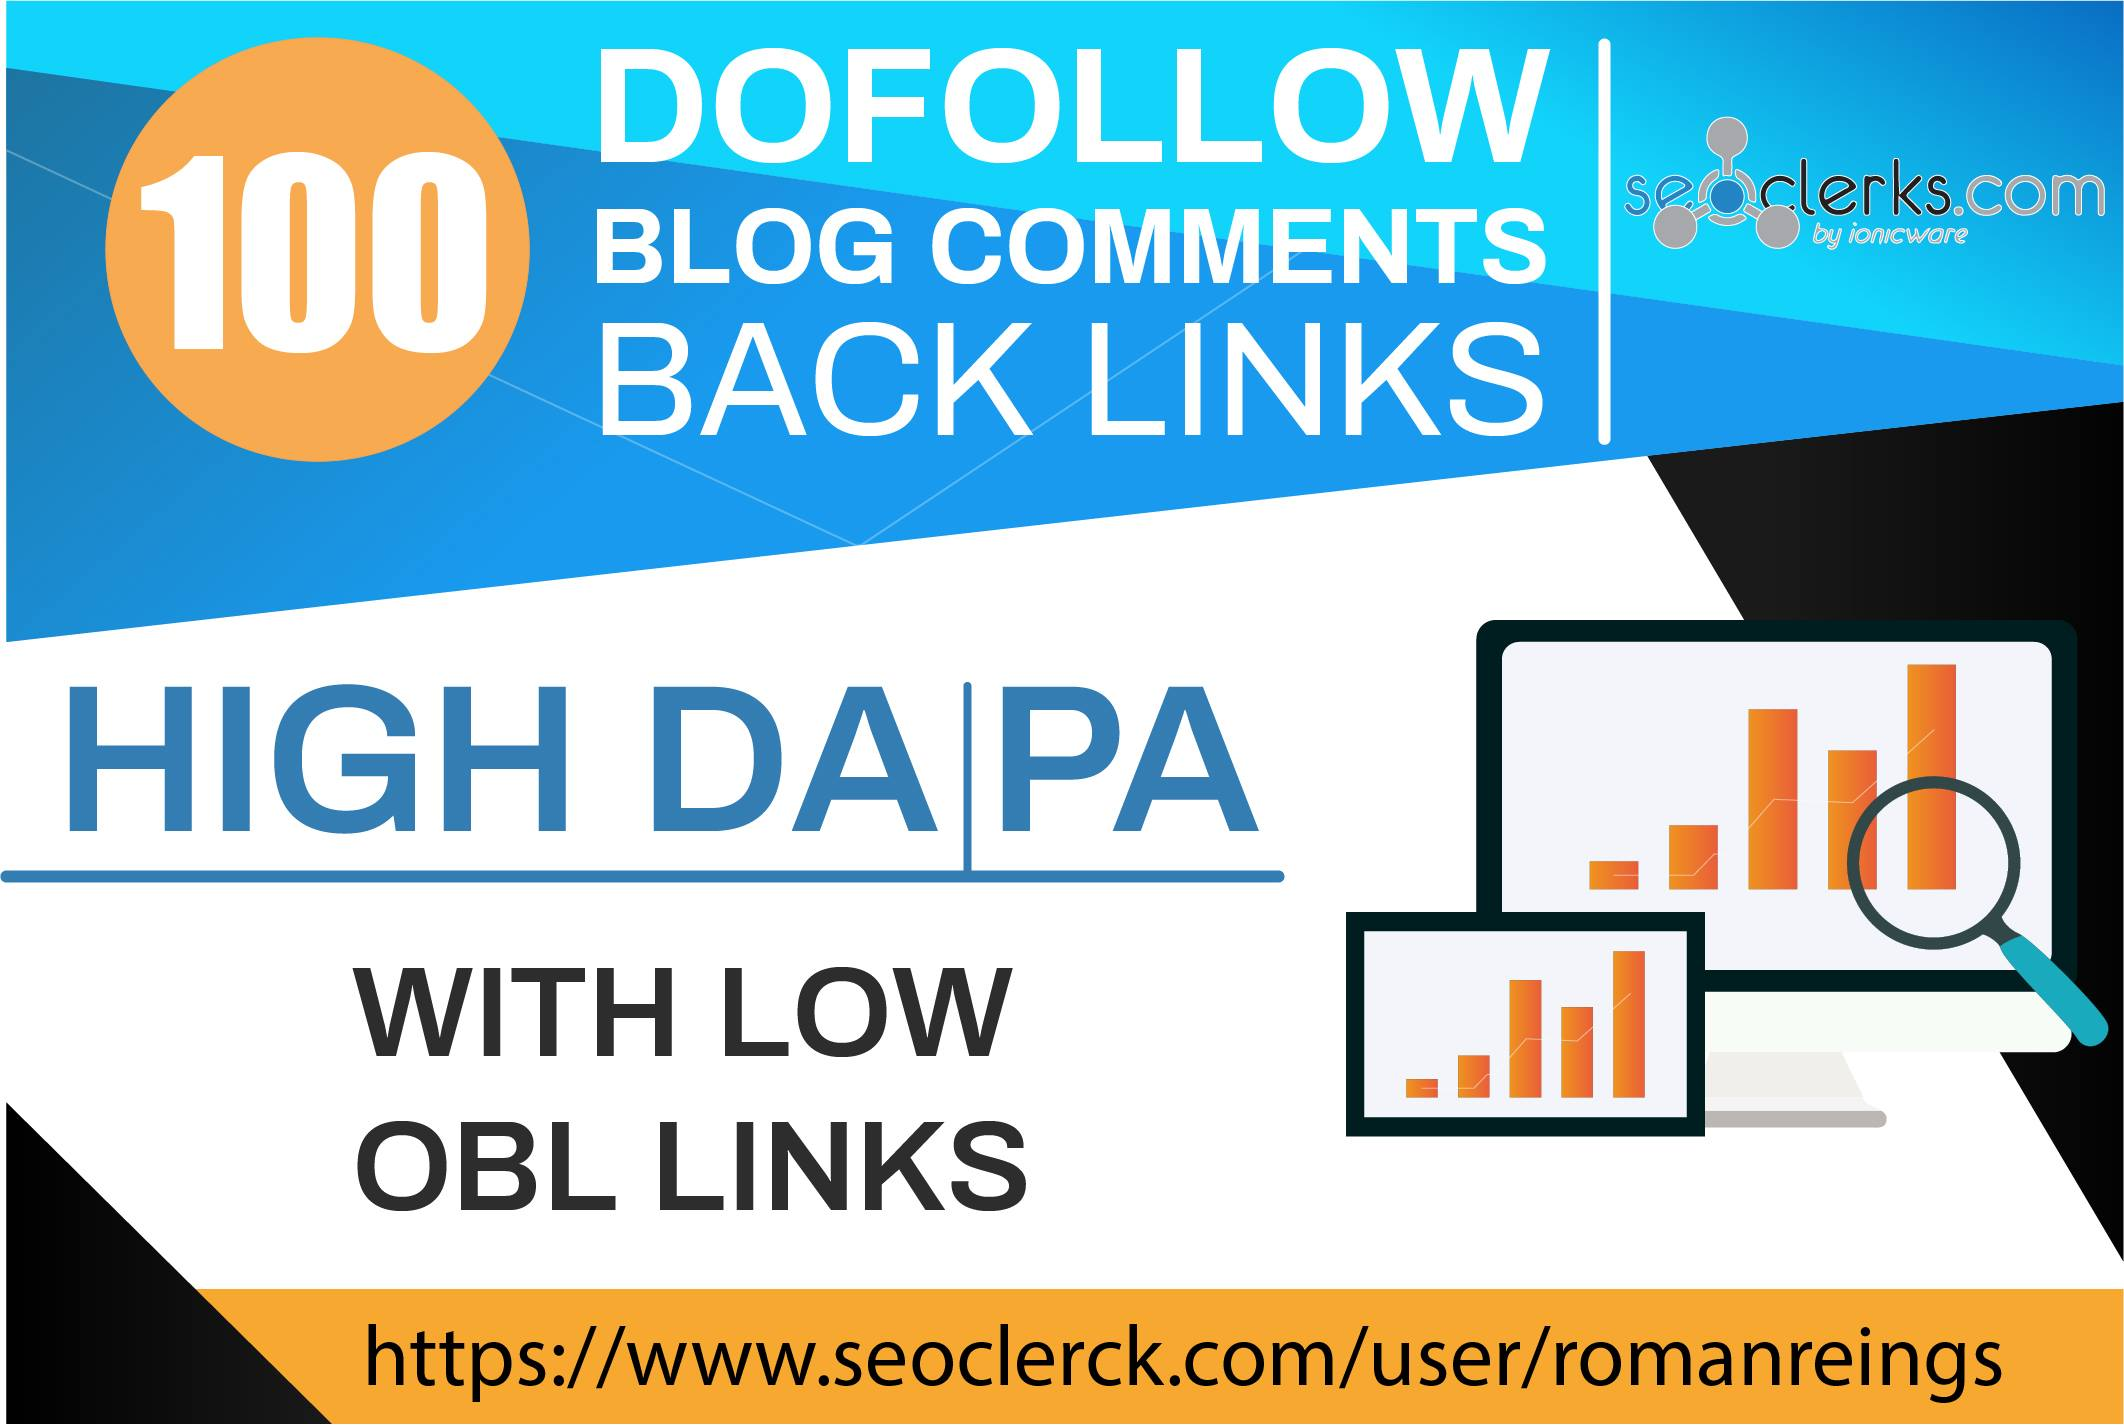 I will 100 Low OBL Blog Comments dofollow Backlinks high DA PA only for $5